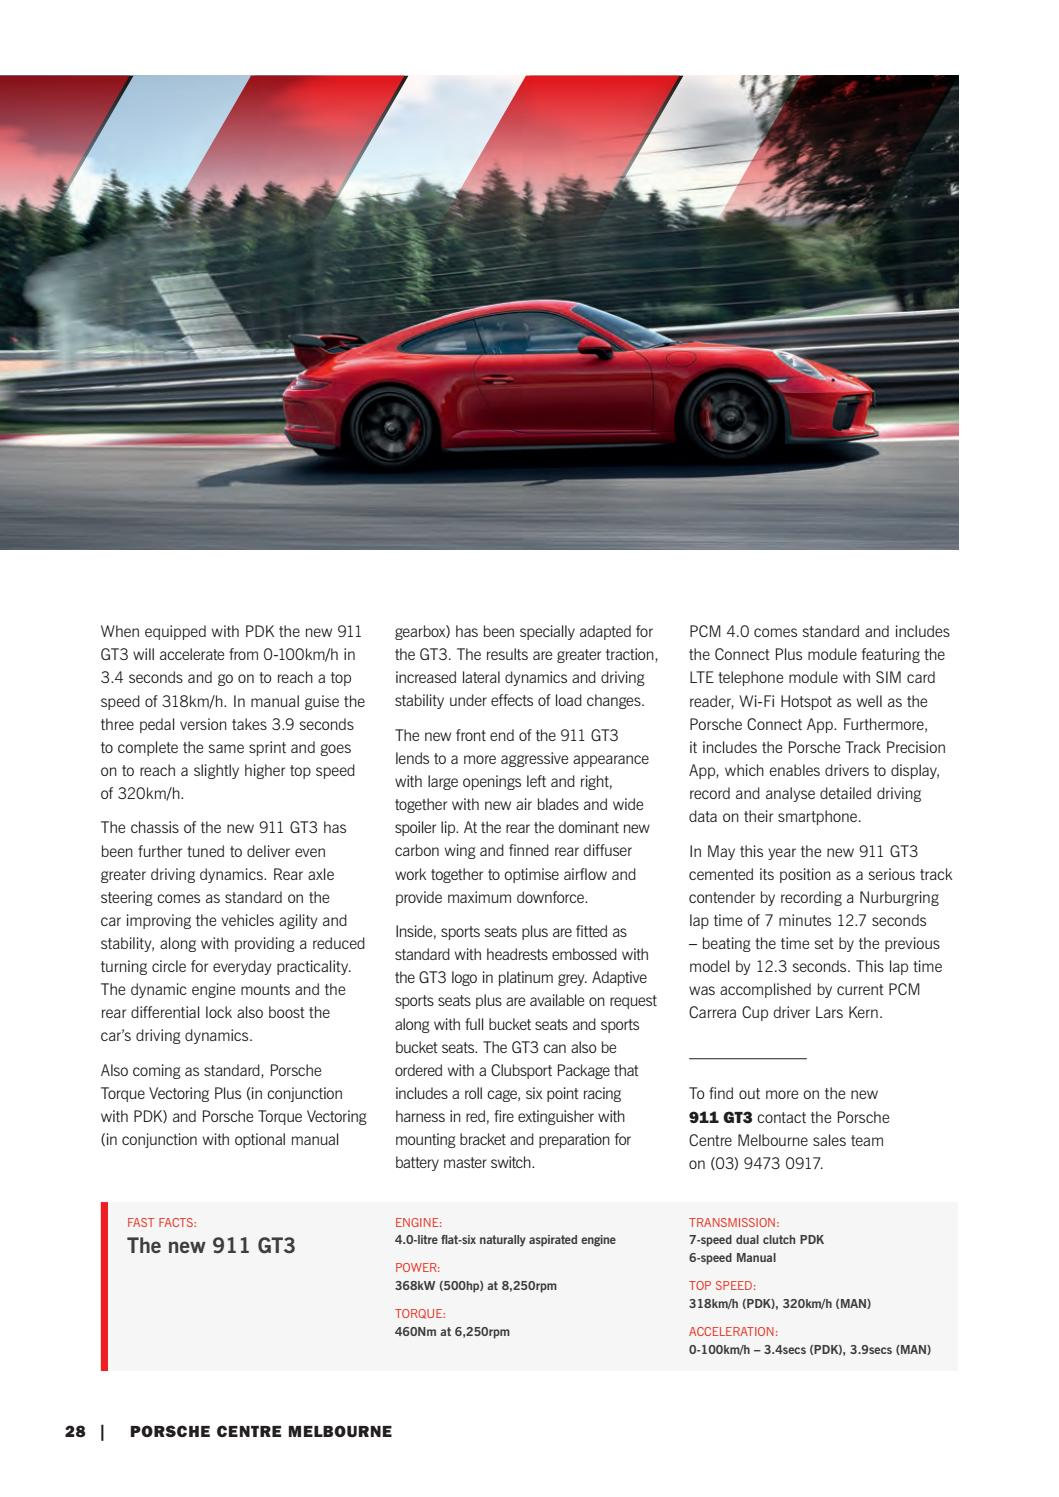 Porsche Torque Magazine – Issue 2 by Struck and Spink - issuu